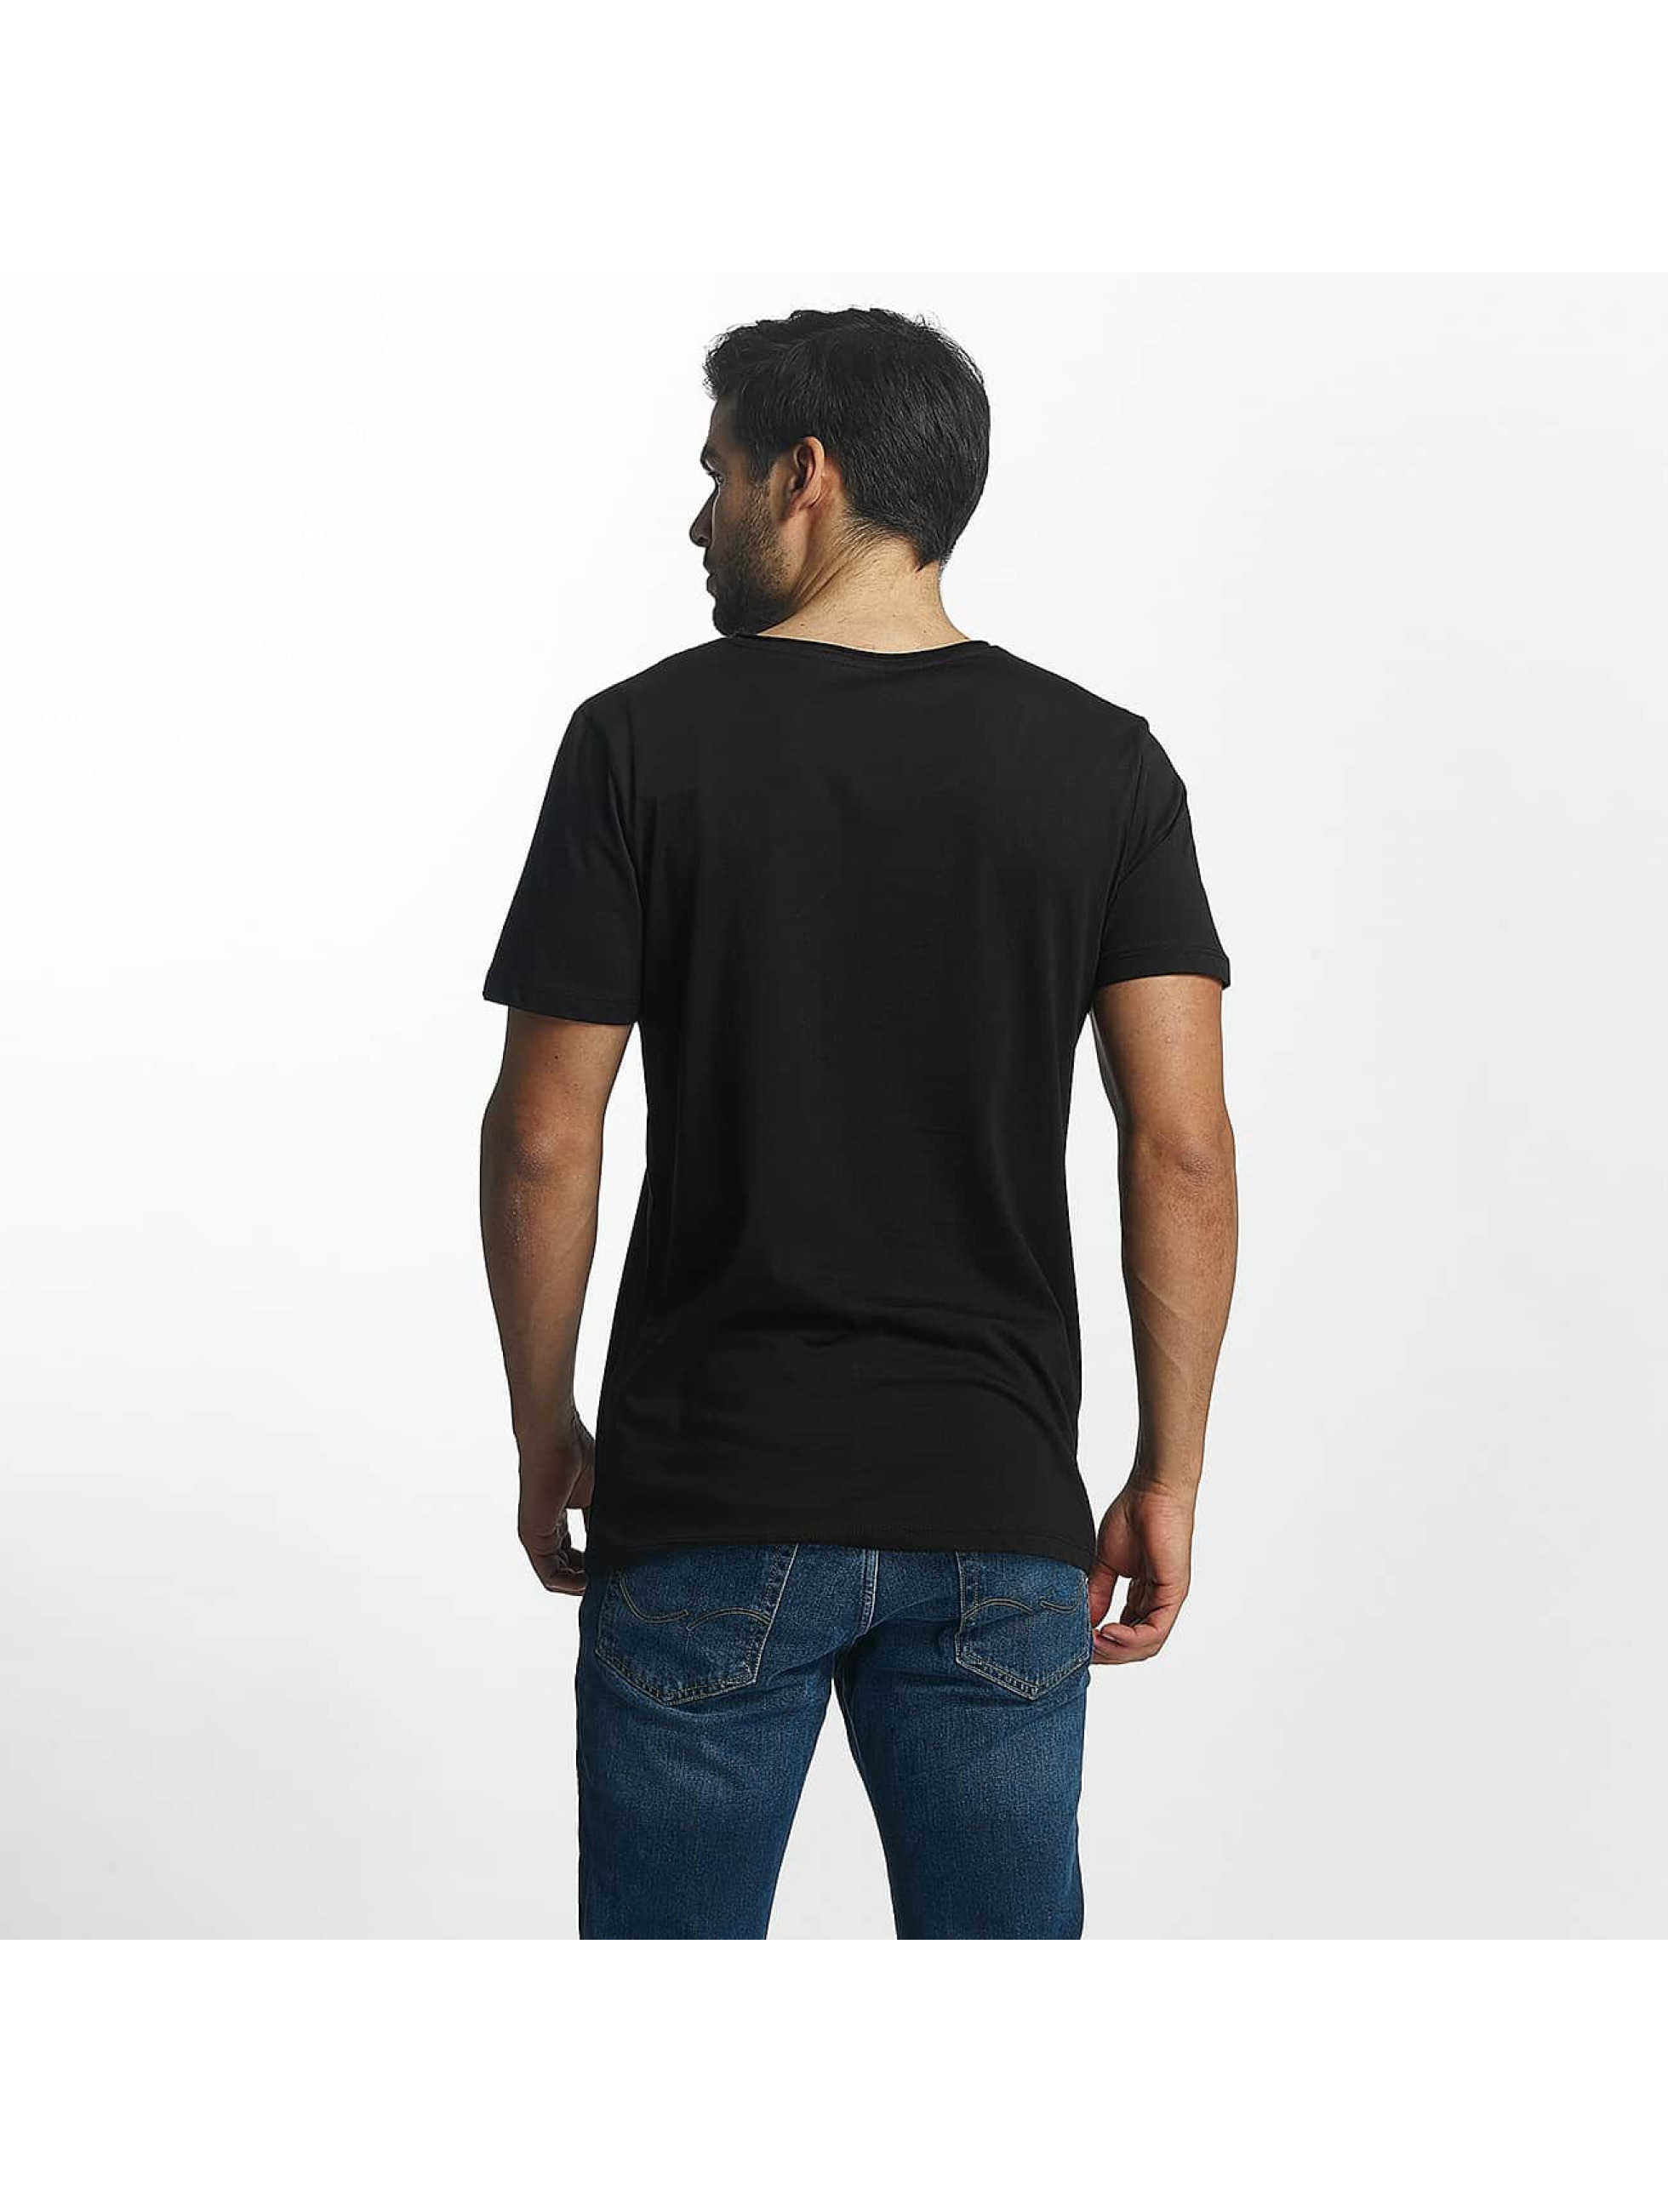 Jack & Jones T-Shirt Split noir